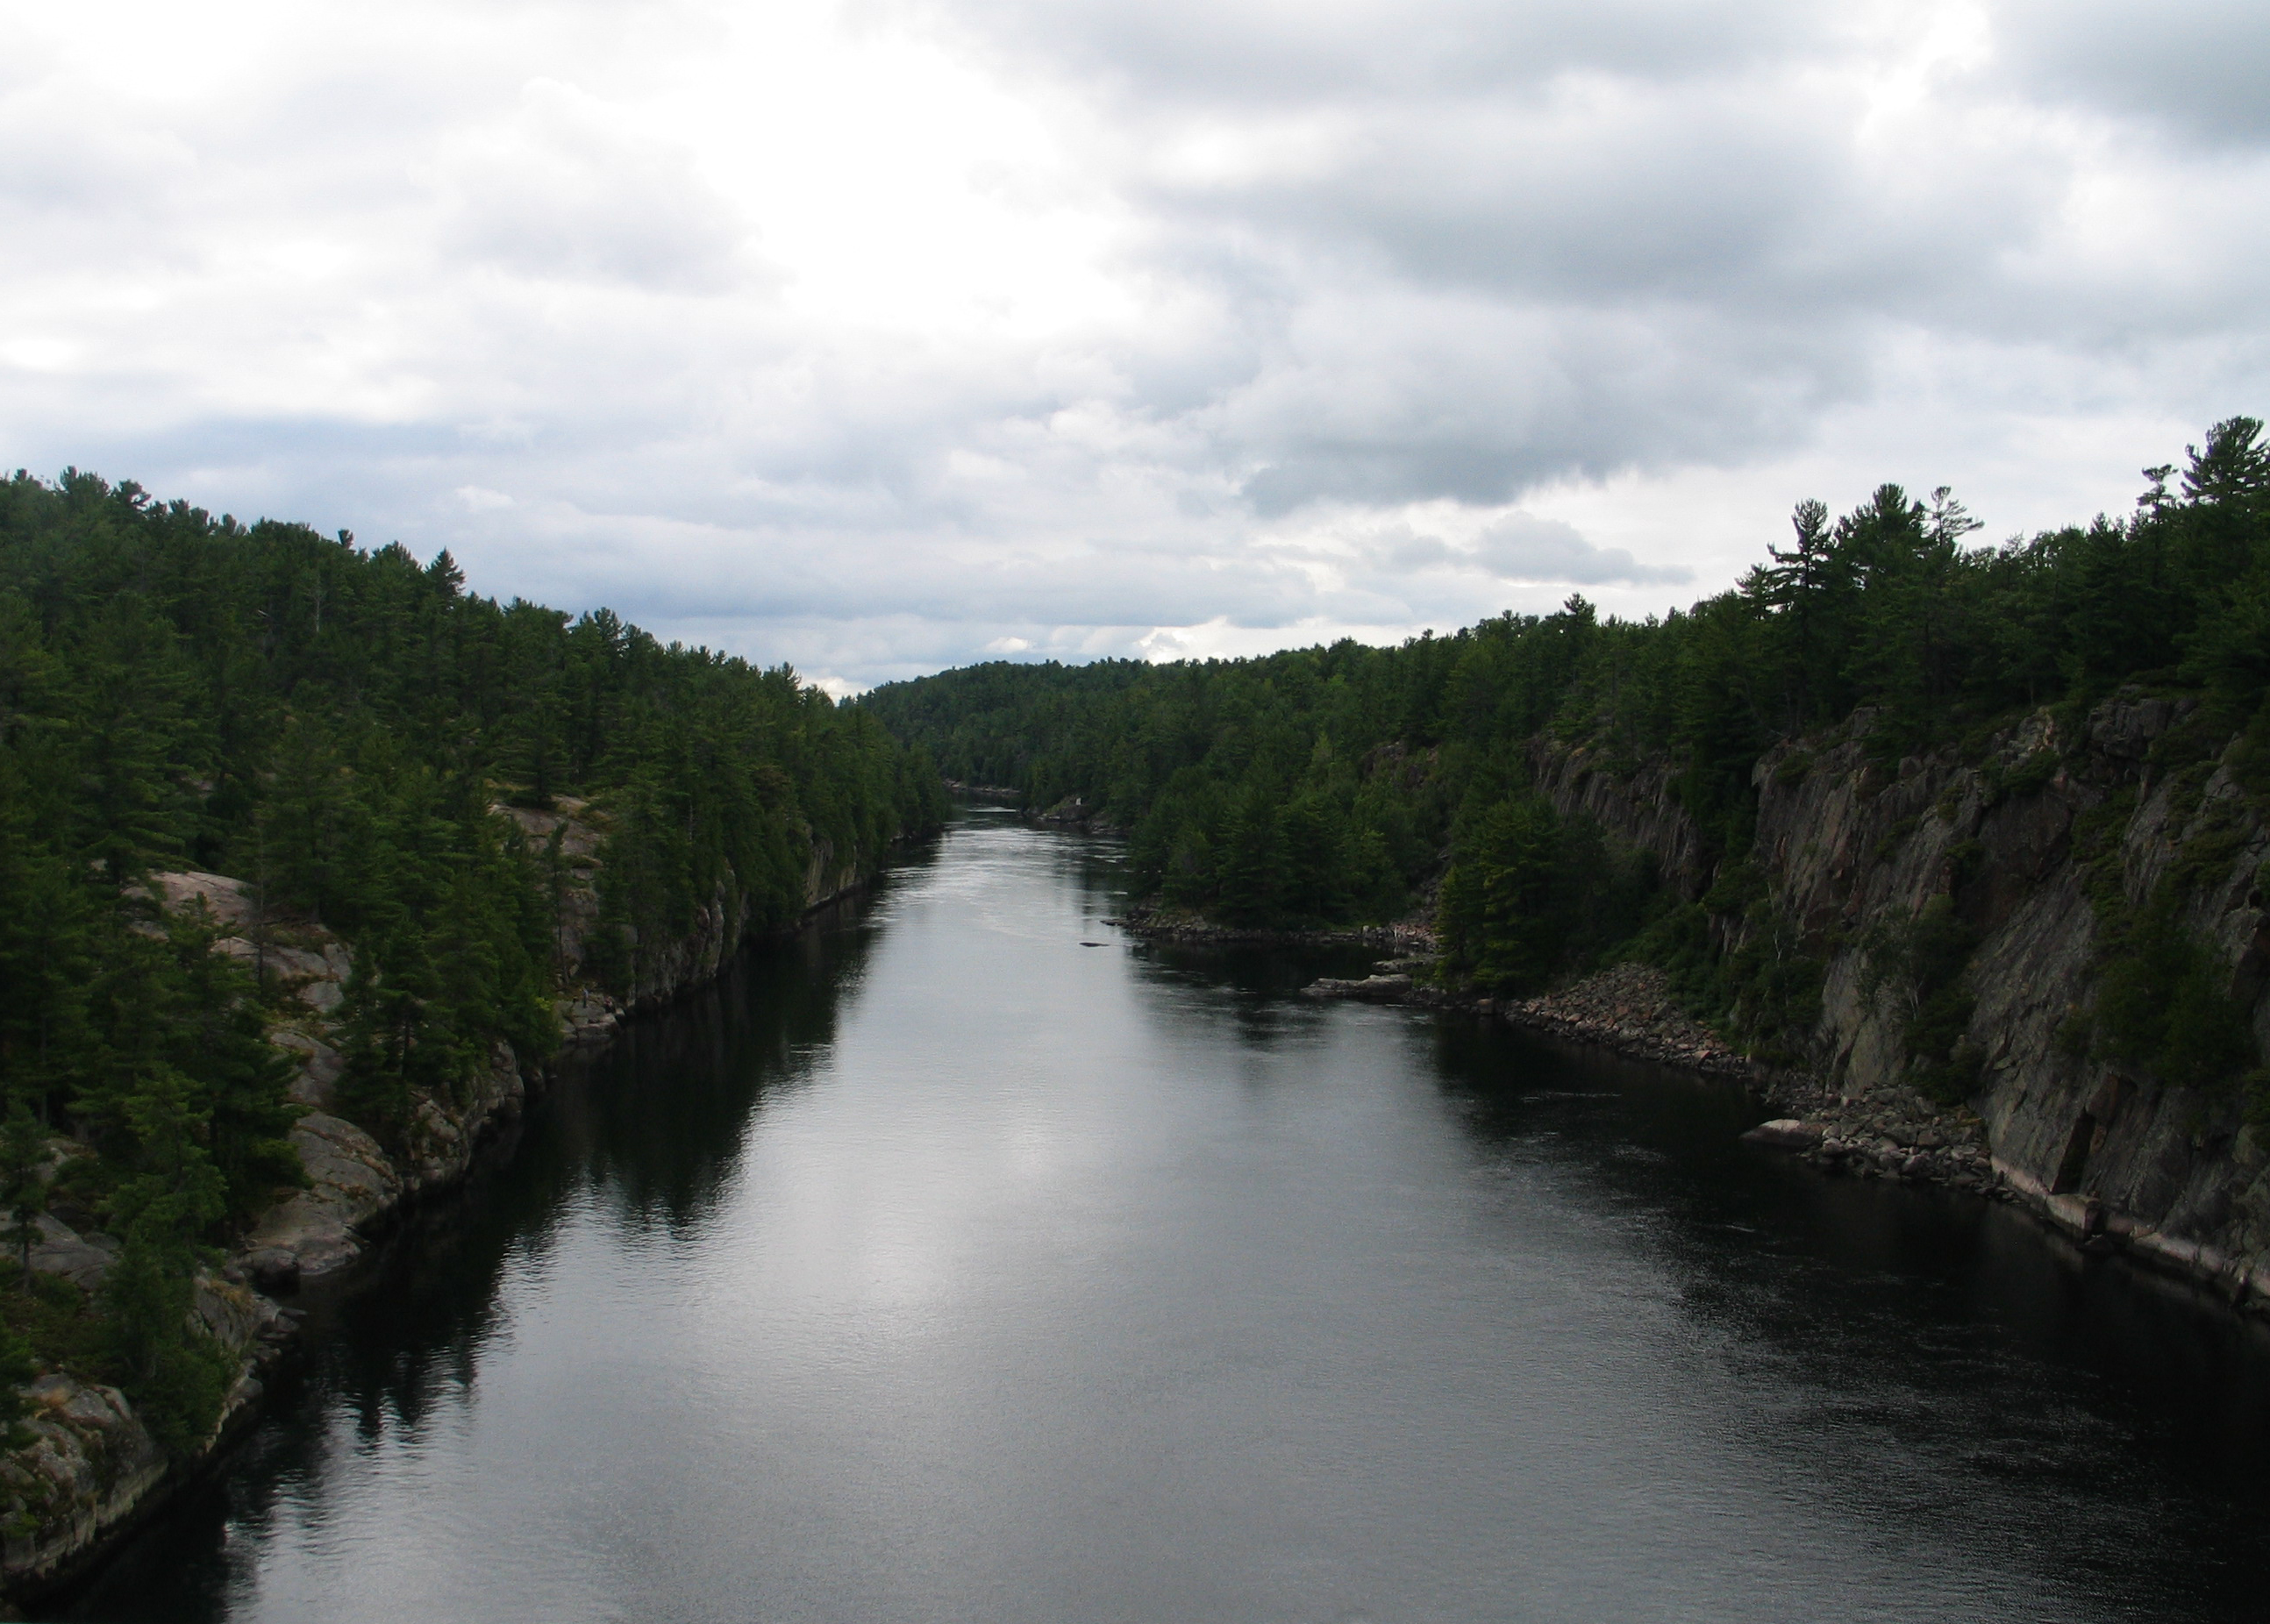 French River. Photo by Ulli Diemer.